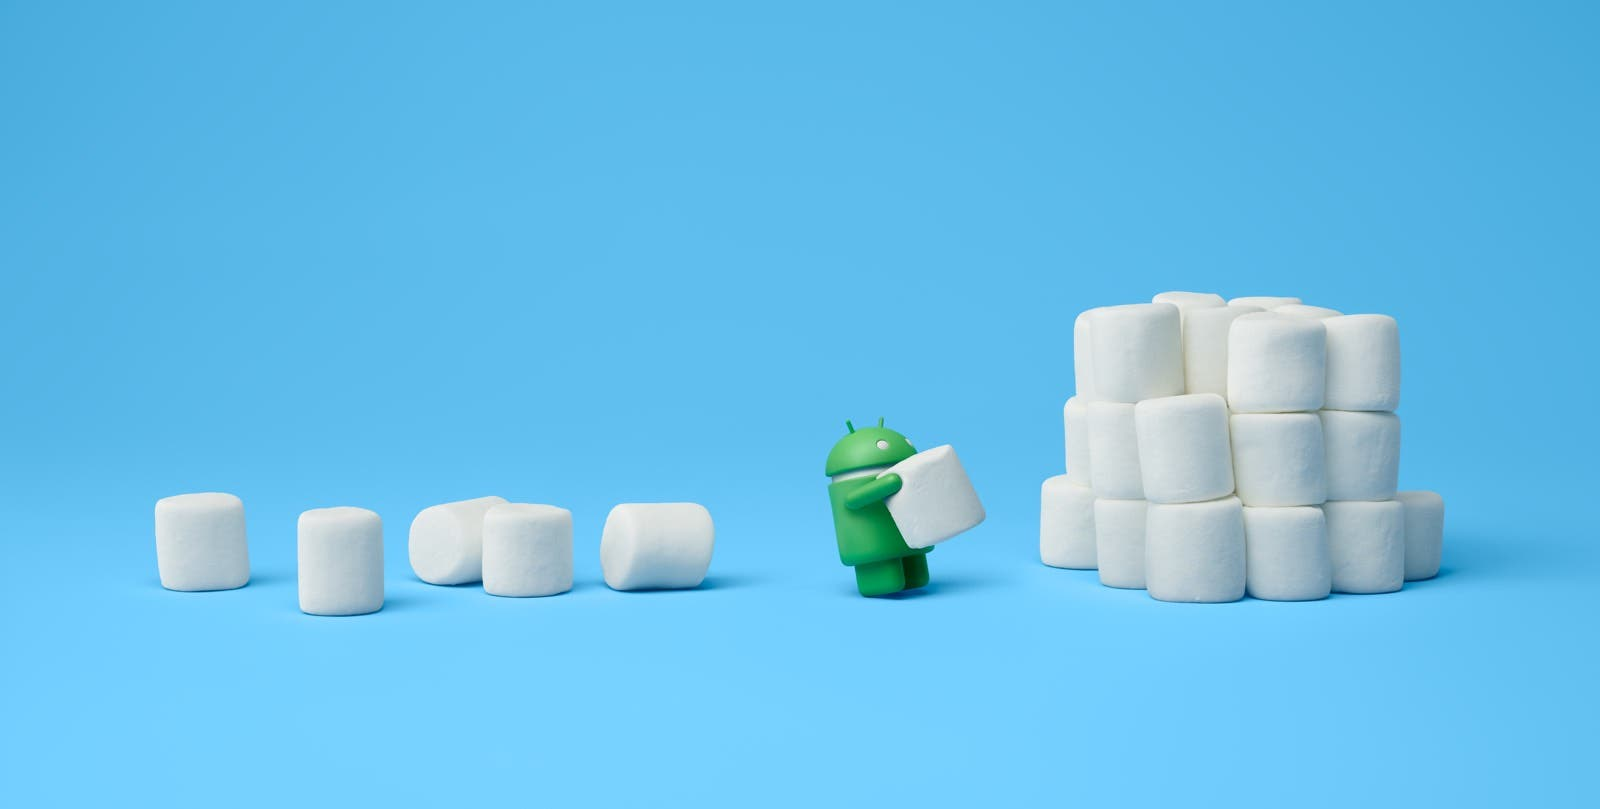 Android-Männchen stapelt Marshmallows